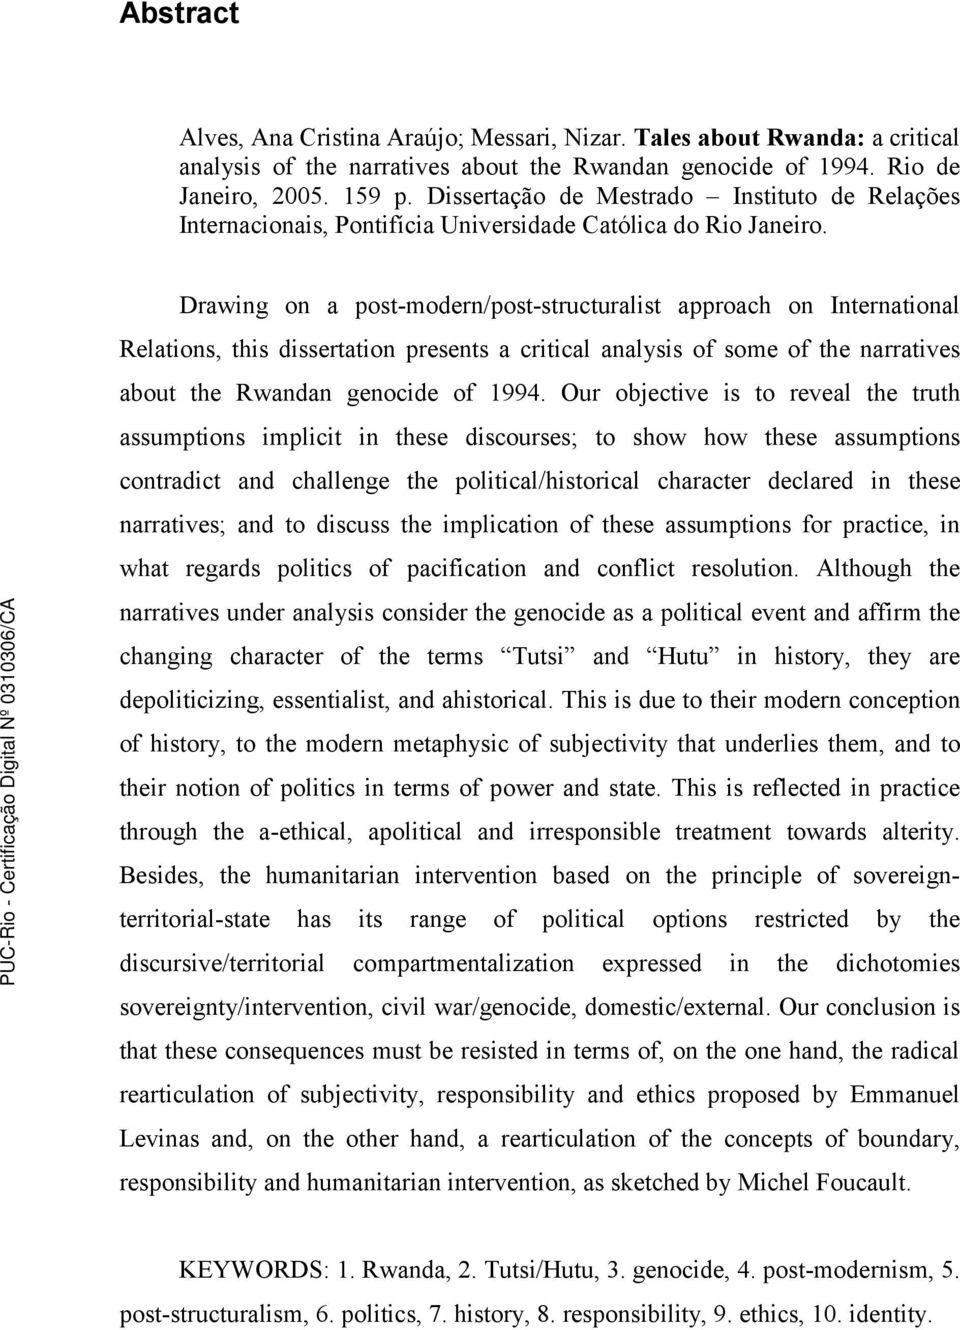 Drawing on a post-modern/post-structuralist approach on International Relations, this dissertation presents a critical analysis of some of the narratives about the Rwandan genocide of 1994.